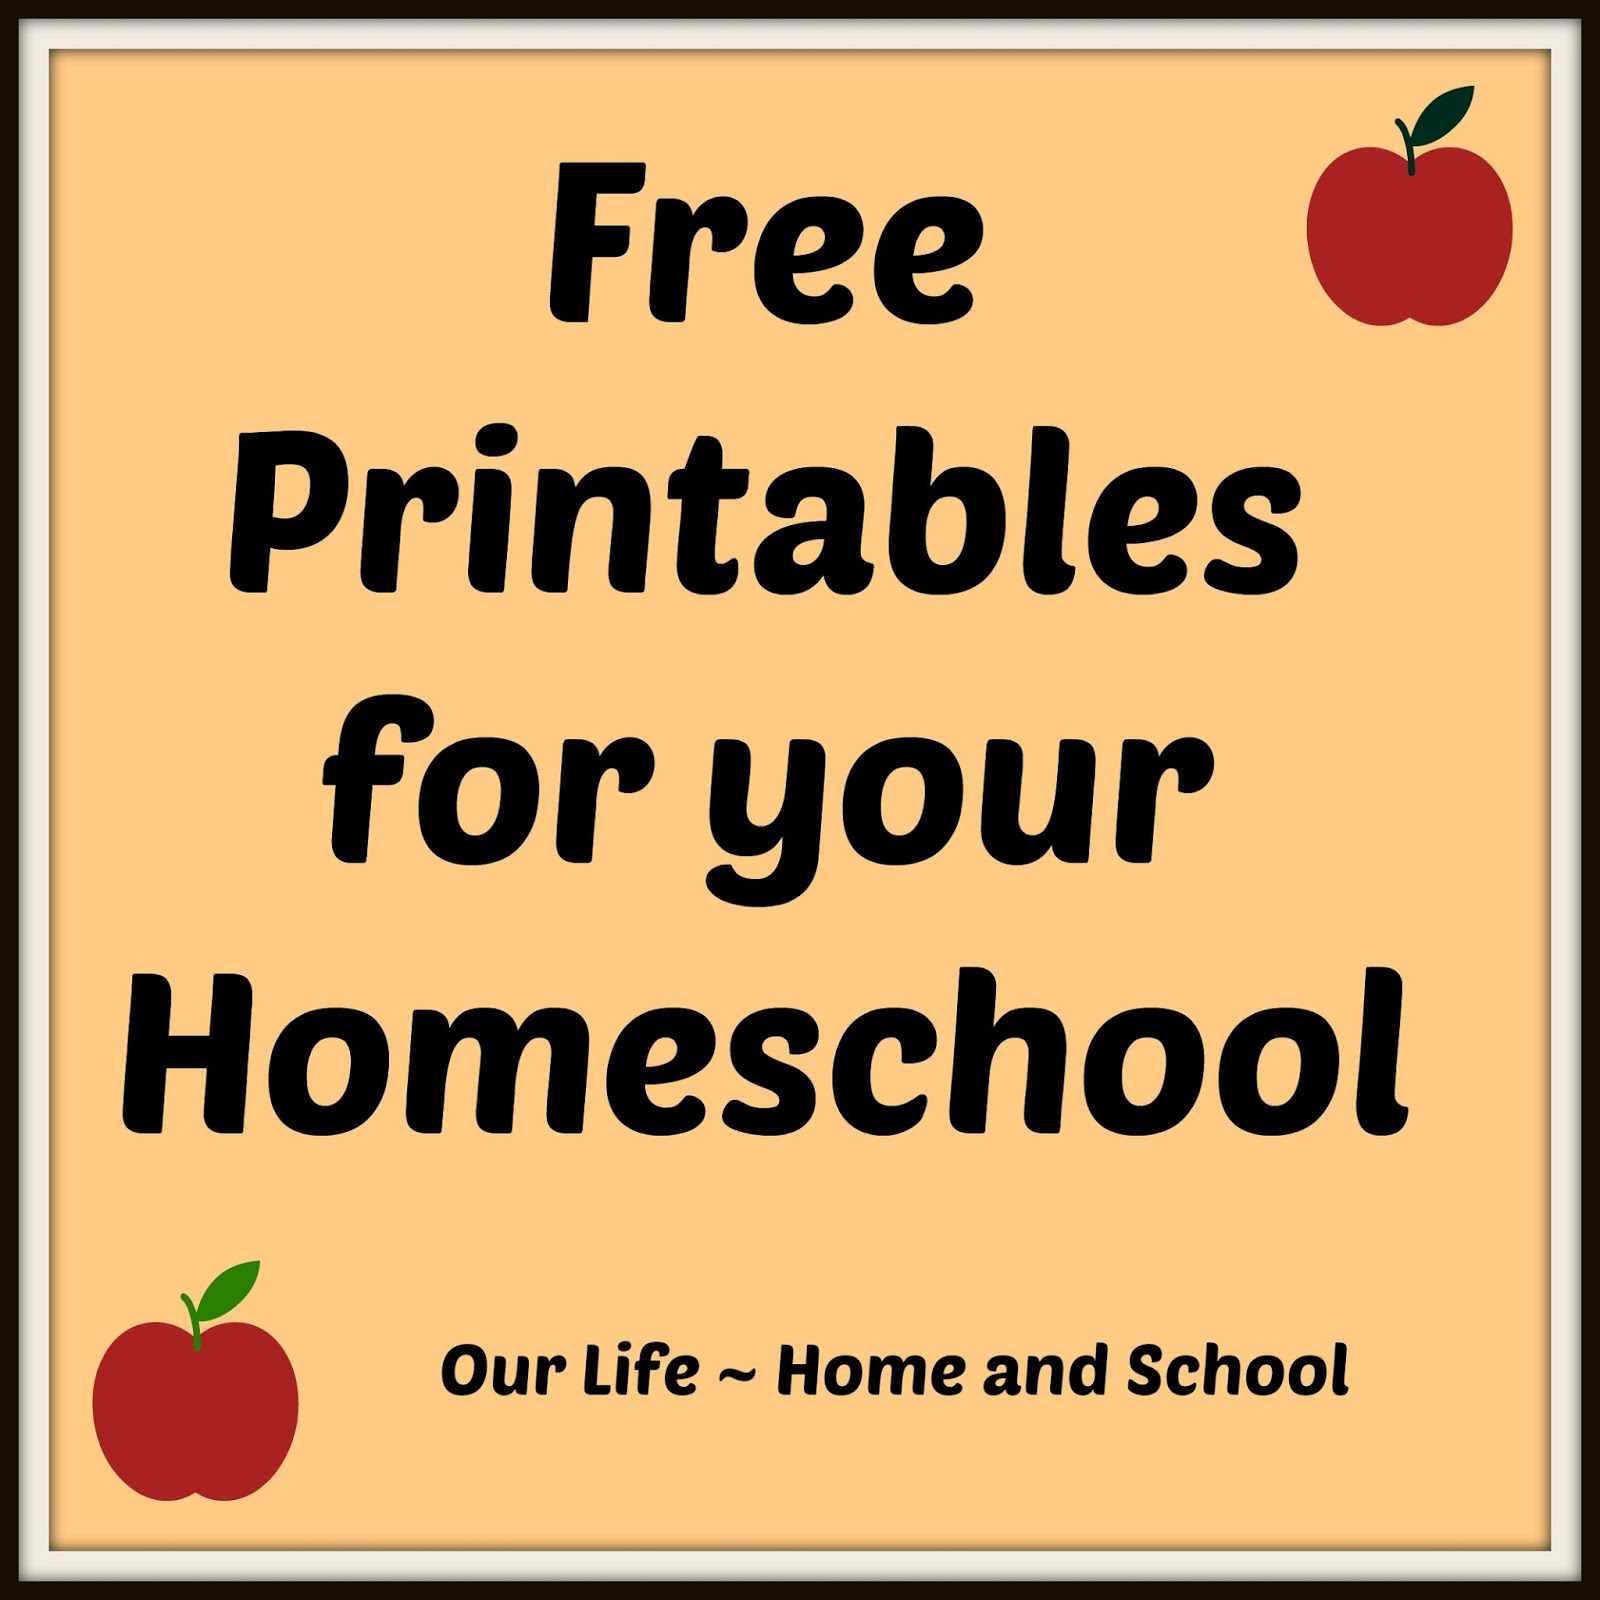 Our Life Home And School Free Printables For Your Homeschool